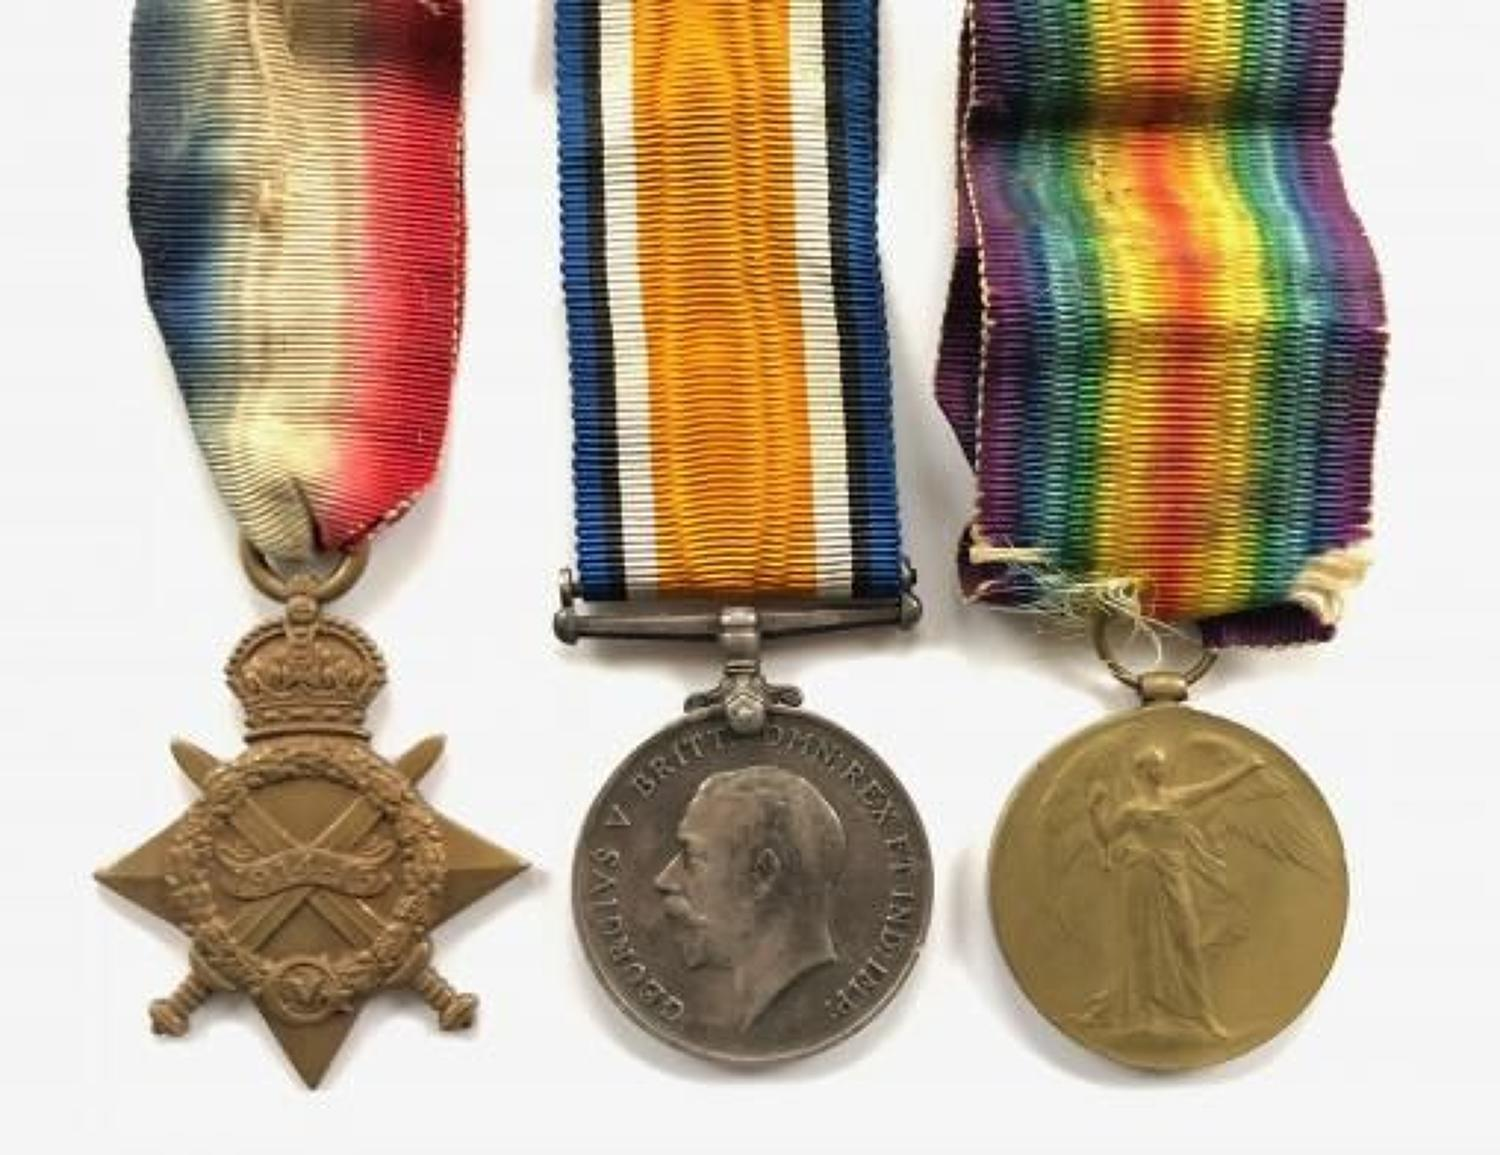 WW1 12th Lancers Group of Three Medals.